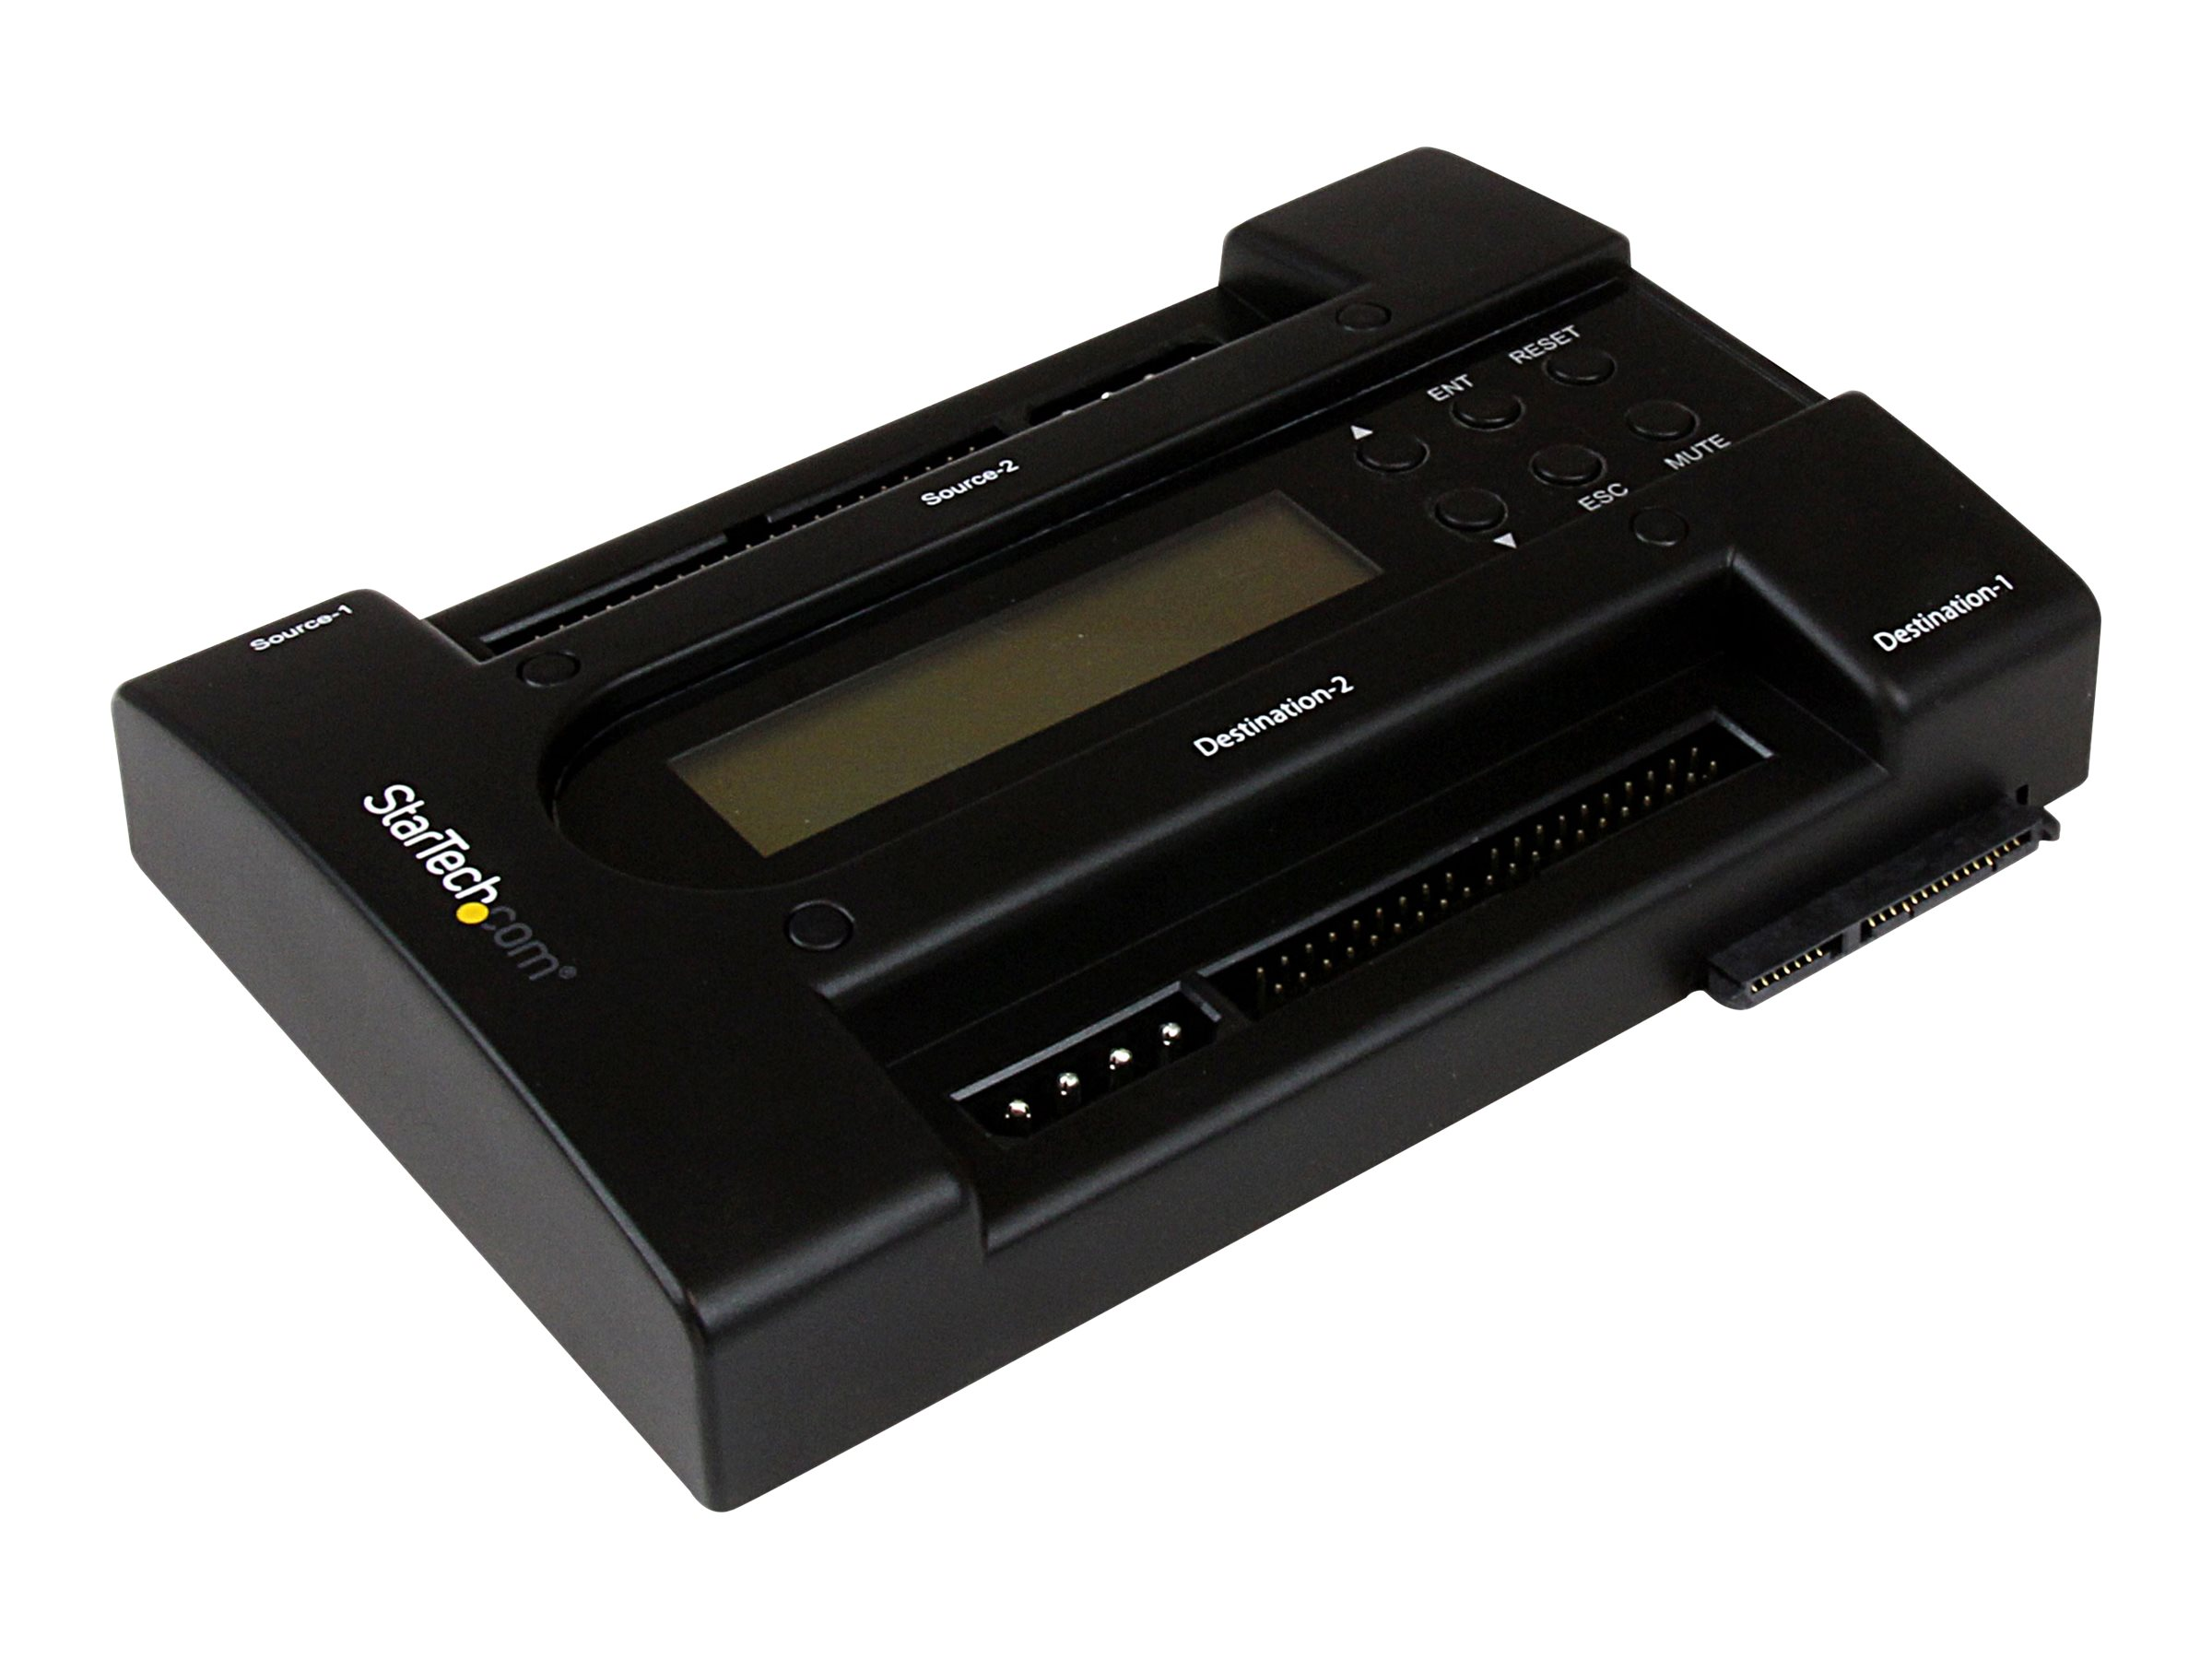 Open Box StarTech.com USB to IDE SATA Standalone Hard Drive Duplicator Dock, UNIDUPDOCK, 12433065, Hard Drive Duplicators